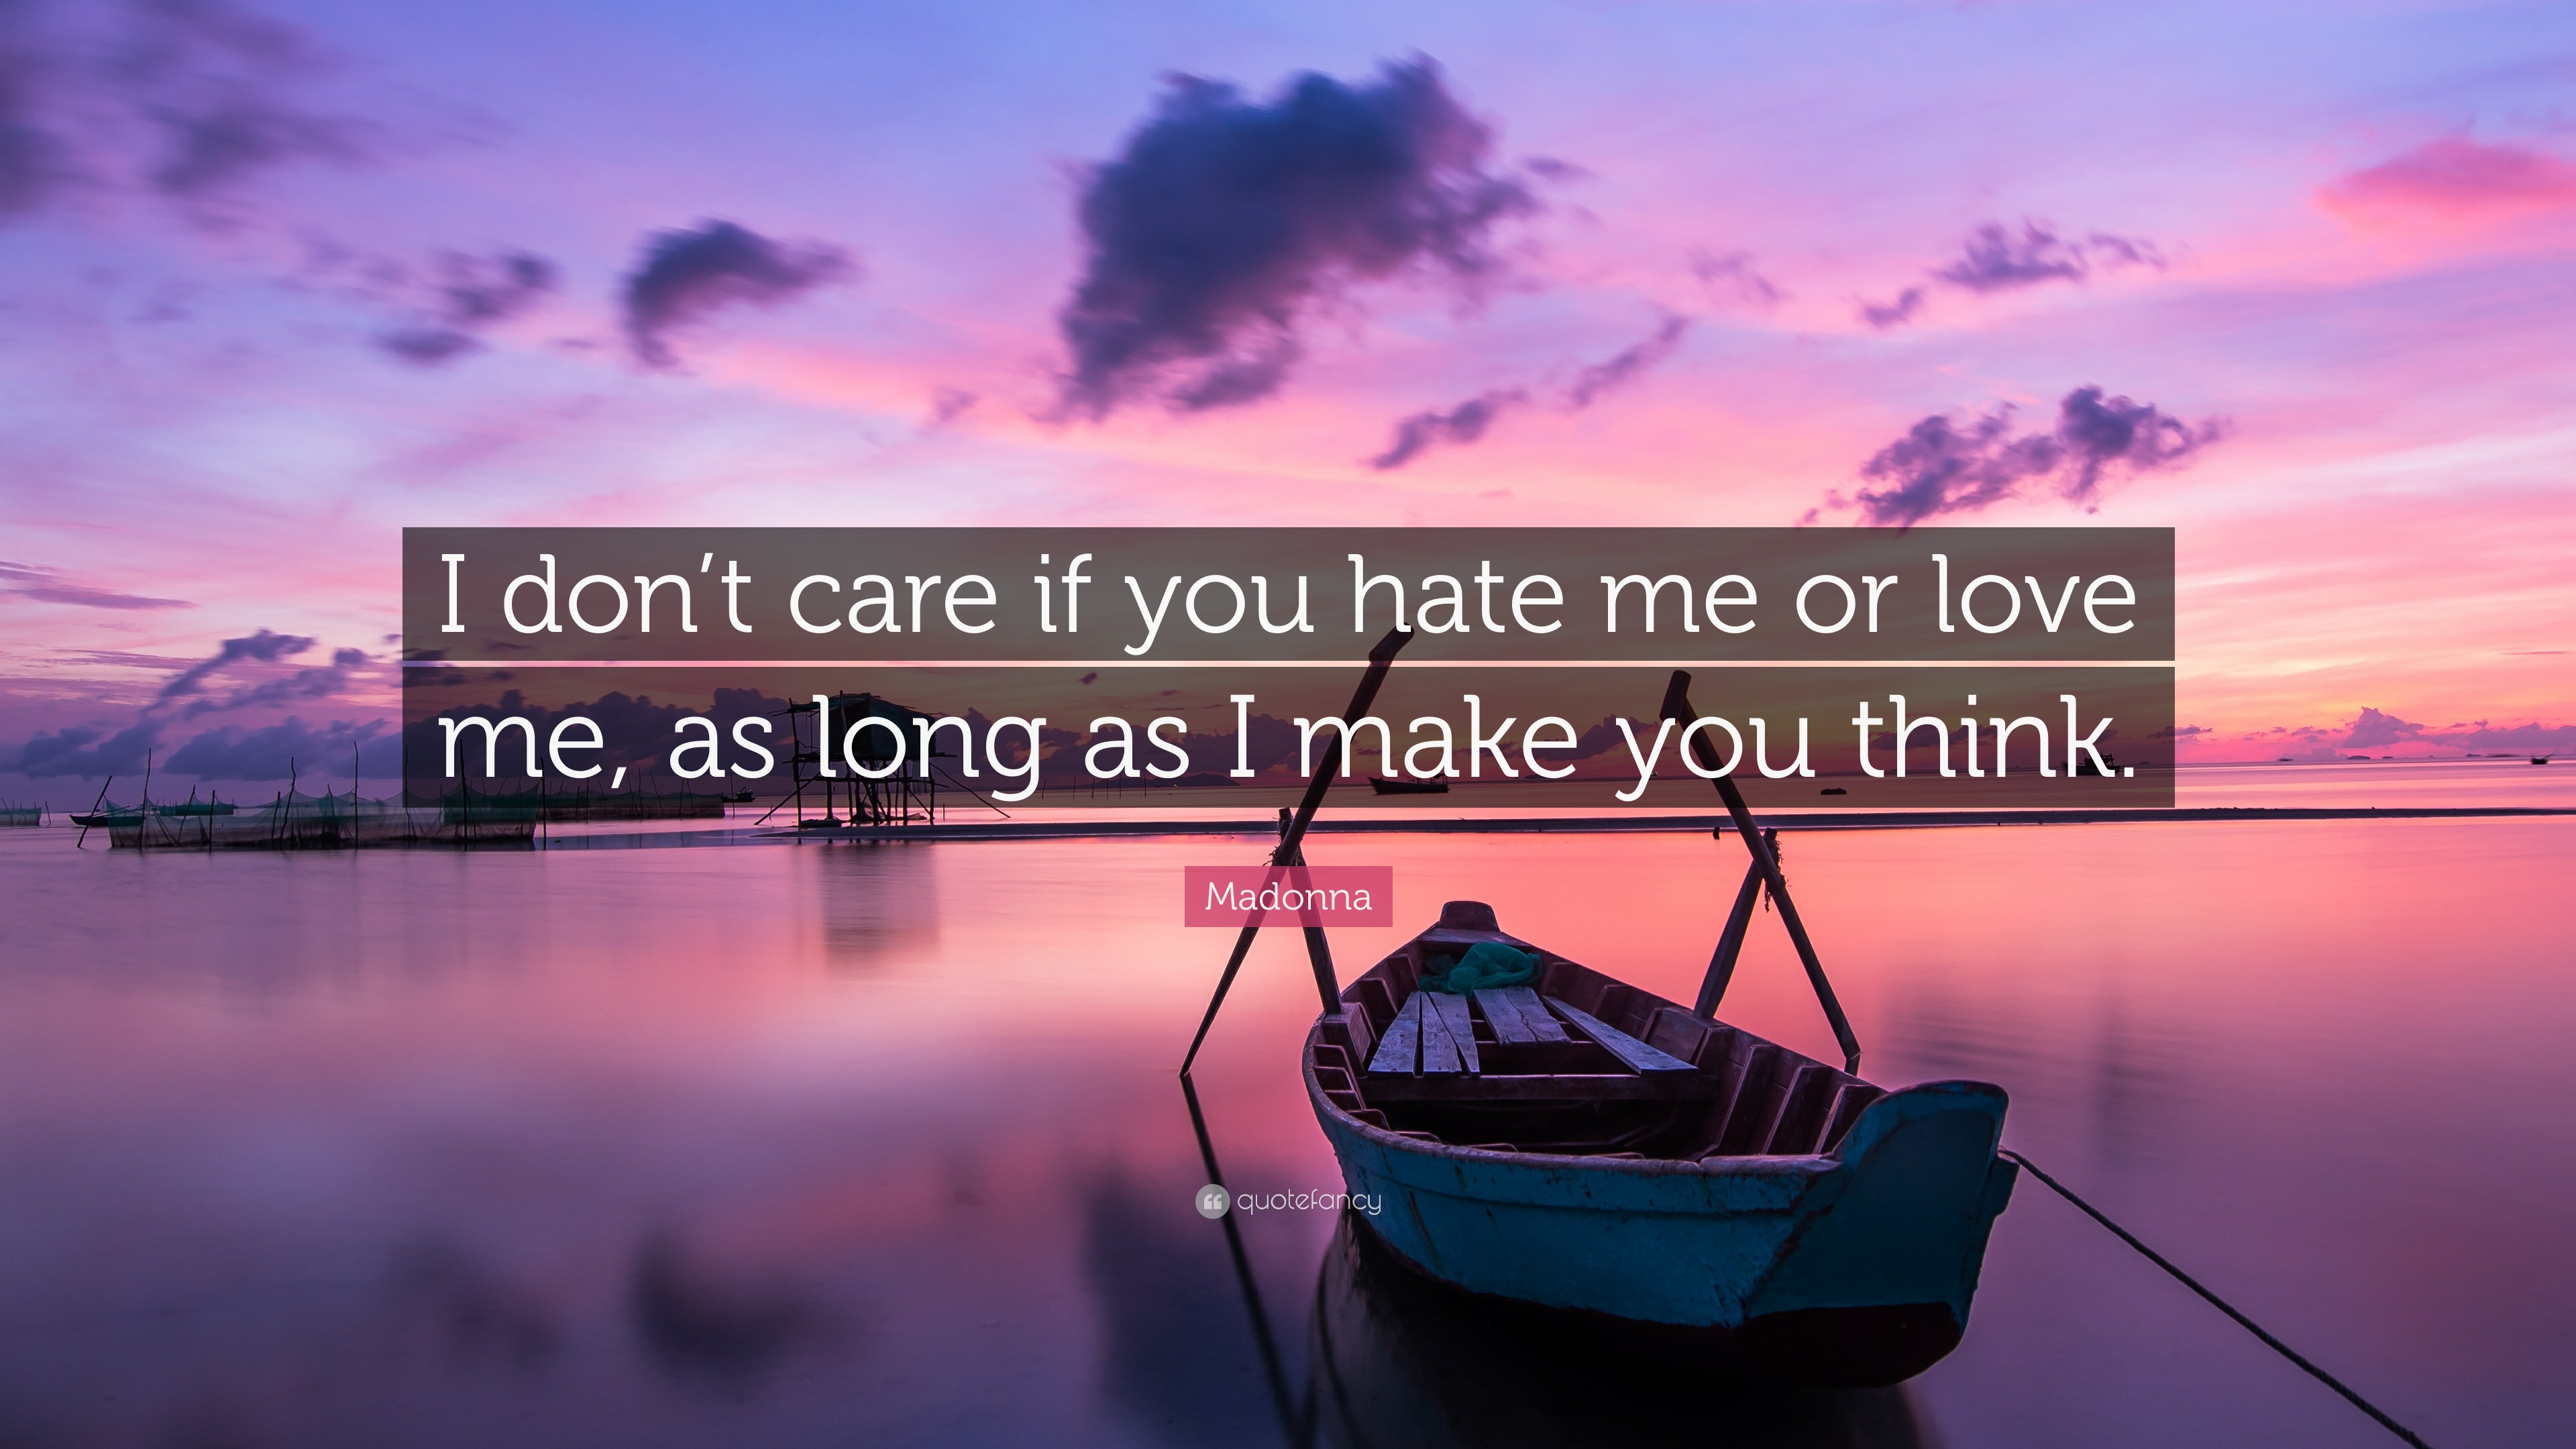 Madonna Quote I Dont Care If You Hate Me Or Love Me As Long As I